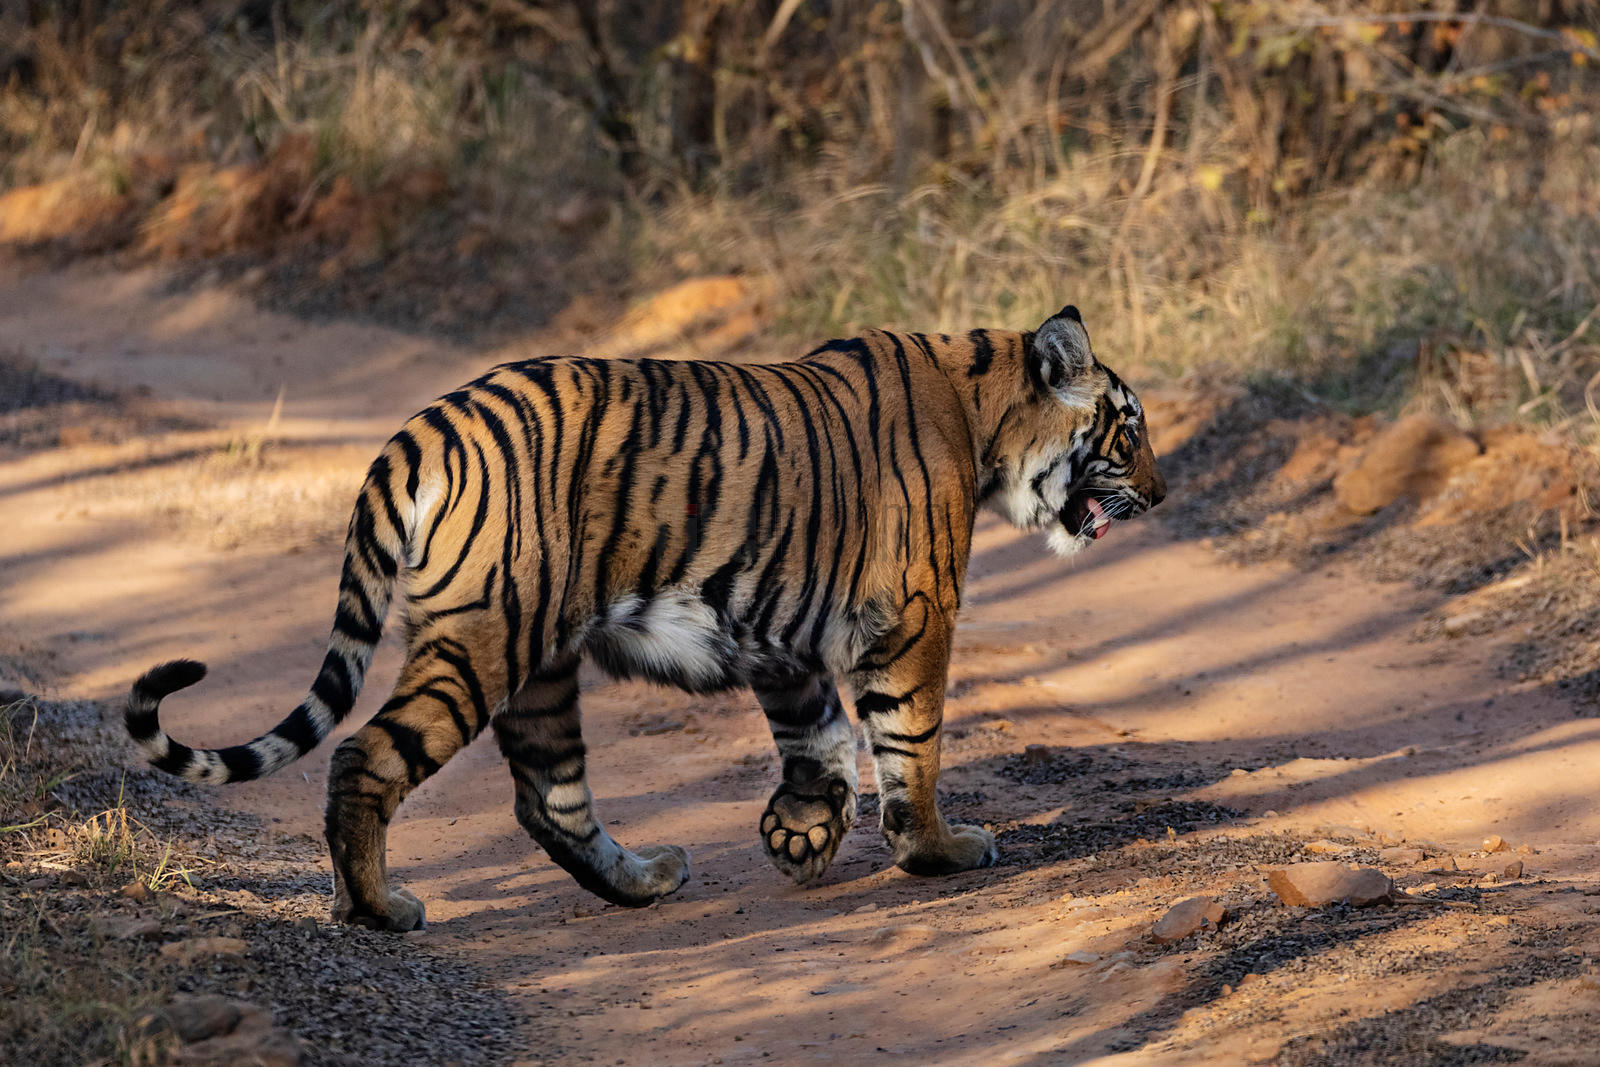 Bengal Tiger Crossing a Road in Ranthambore National Park